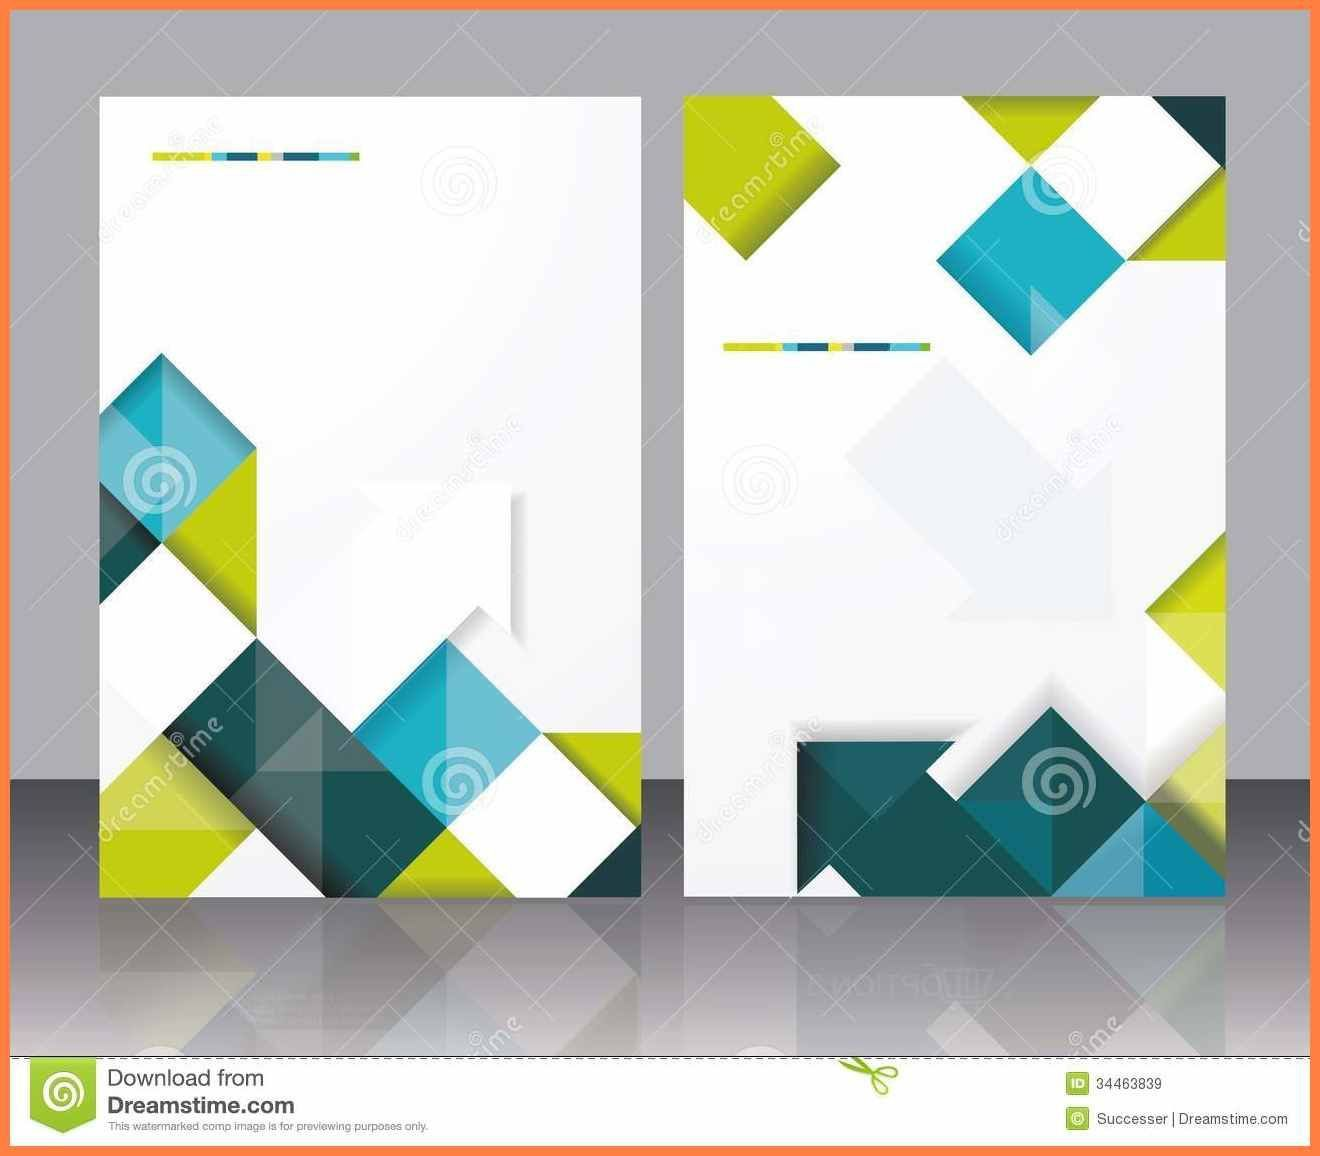 004 Marvelou Download Brochure Template For Word 2007 High Def Full